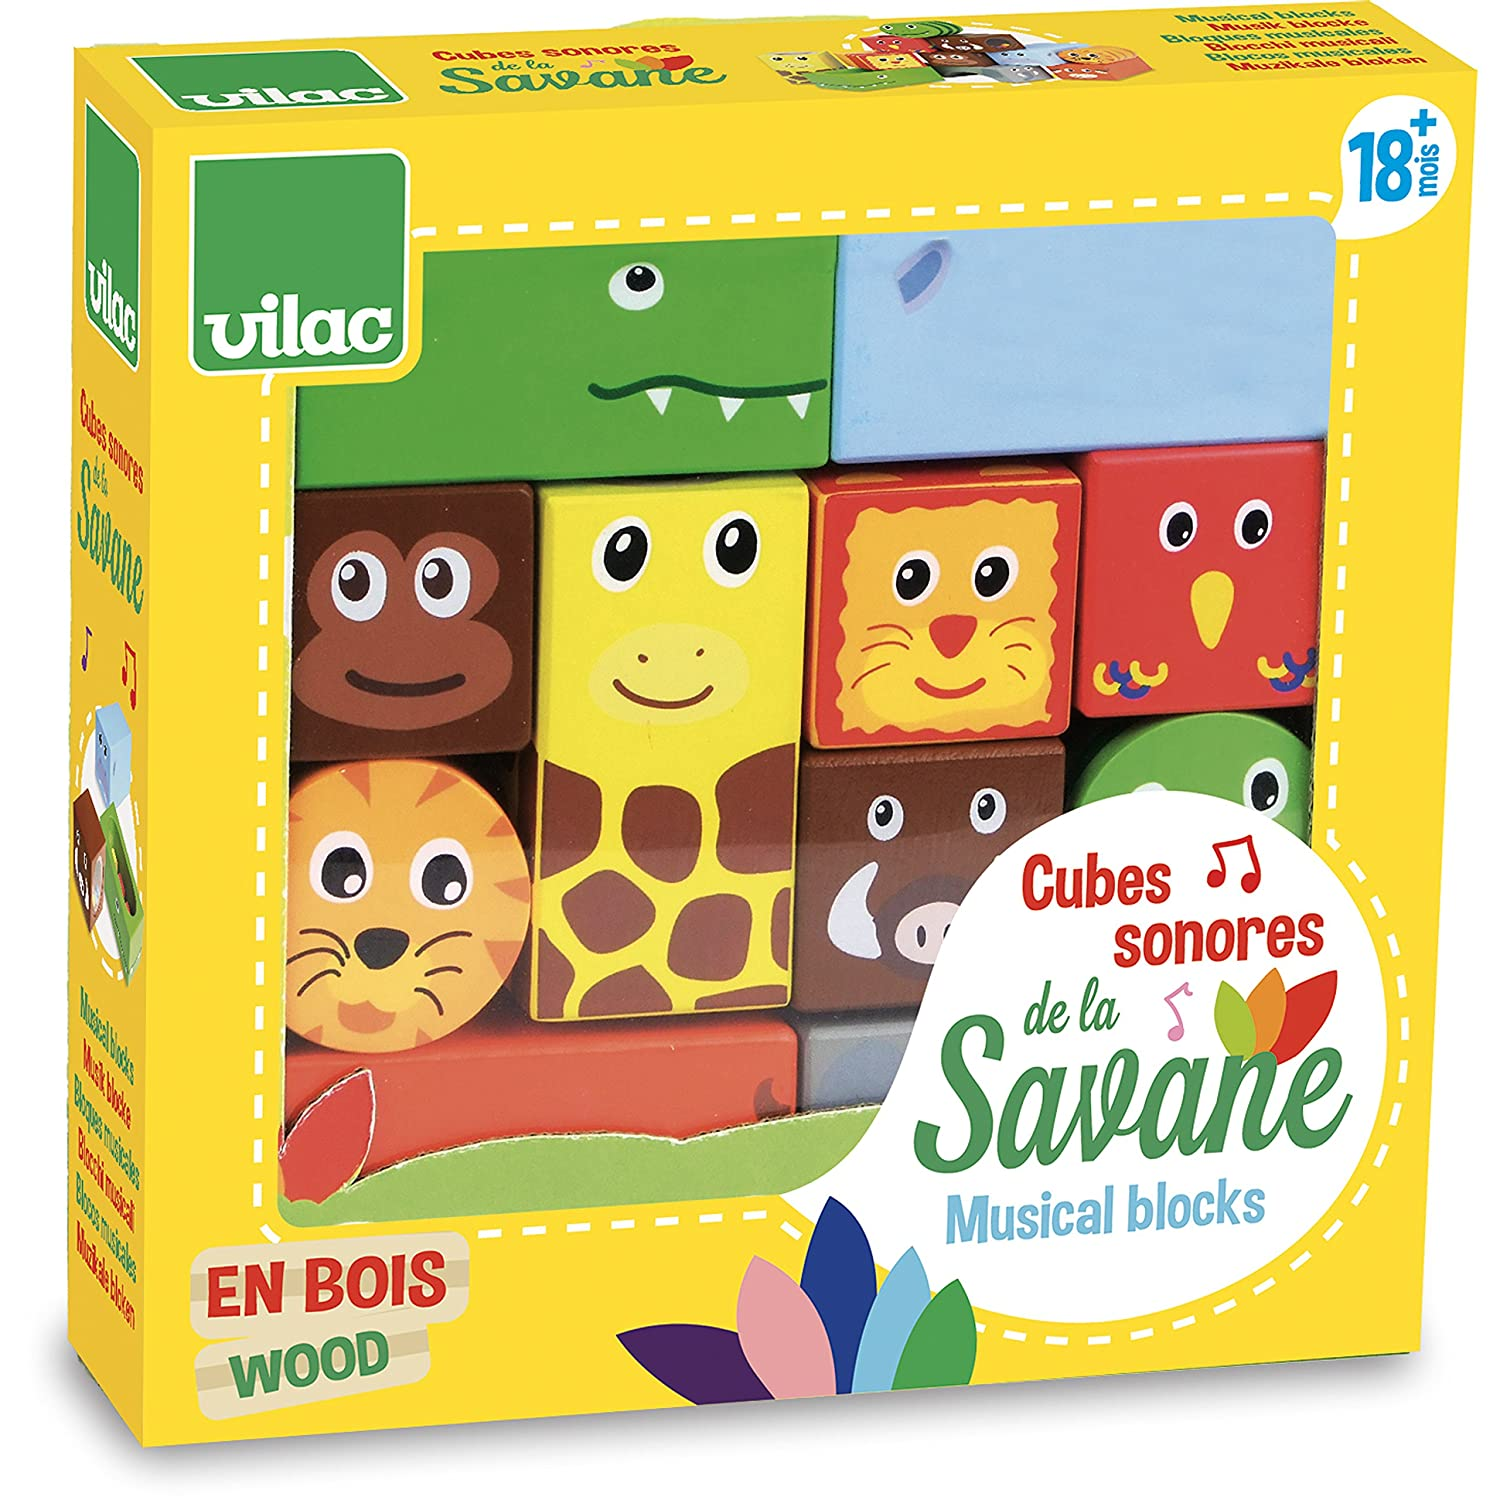 Vilac Vilac2101 Savanna Musical Blocks